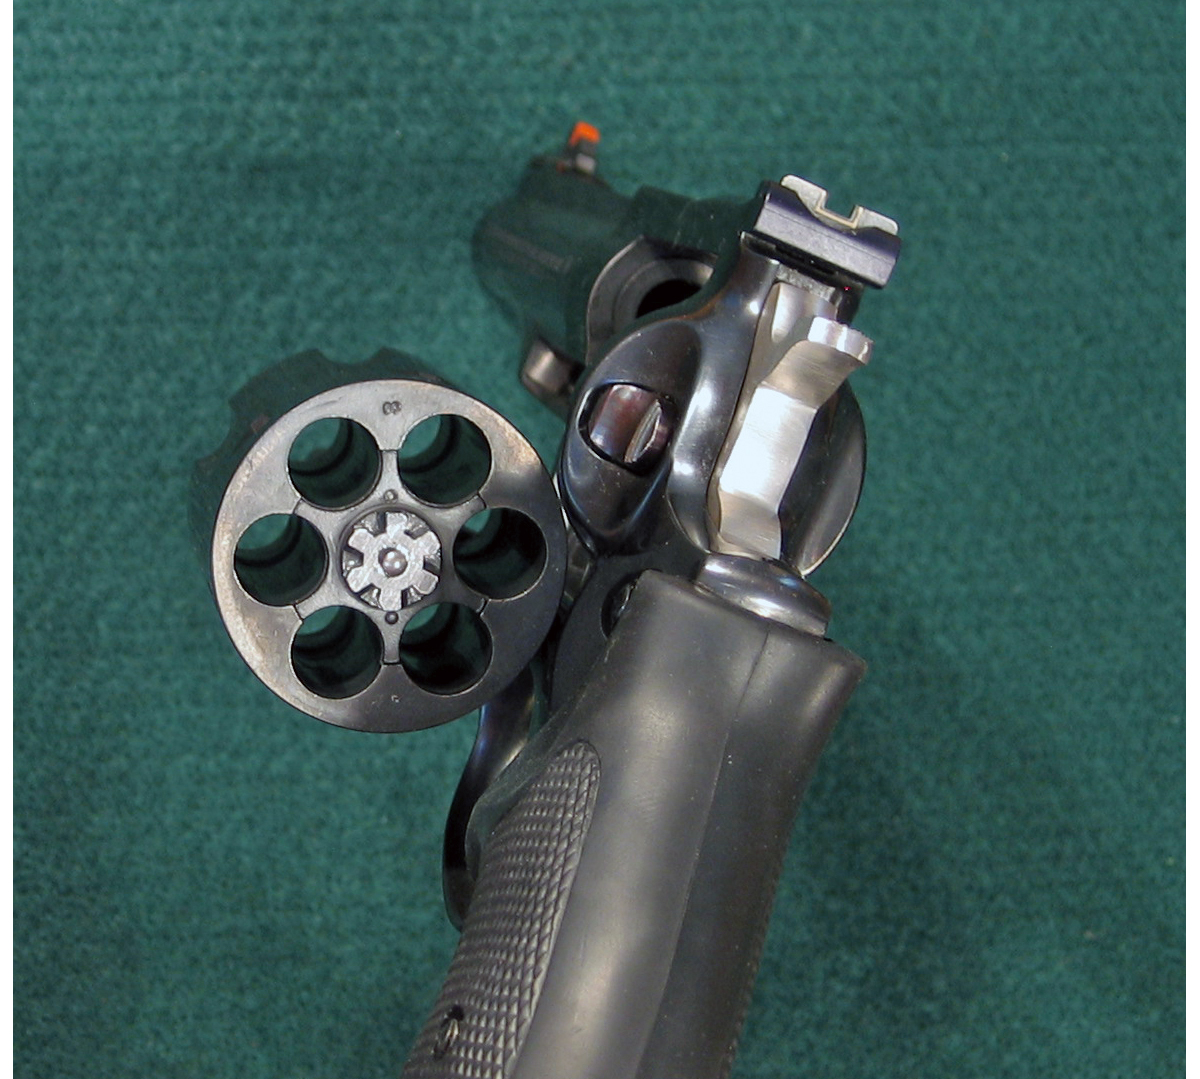 Ruger Redhawk 44 magnum double action revolver with cylinder open. (Photo © Russ Chastain)